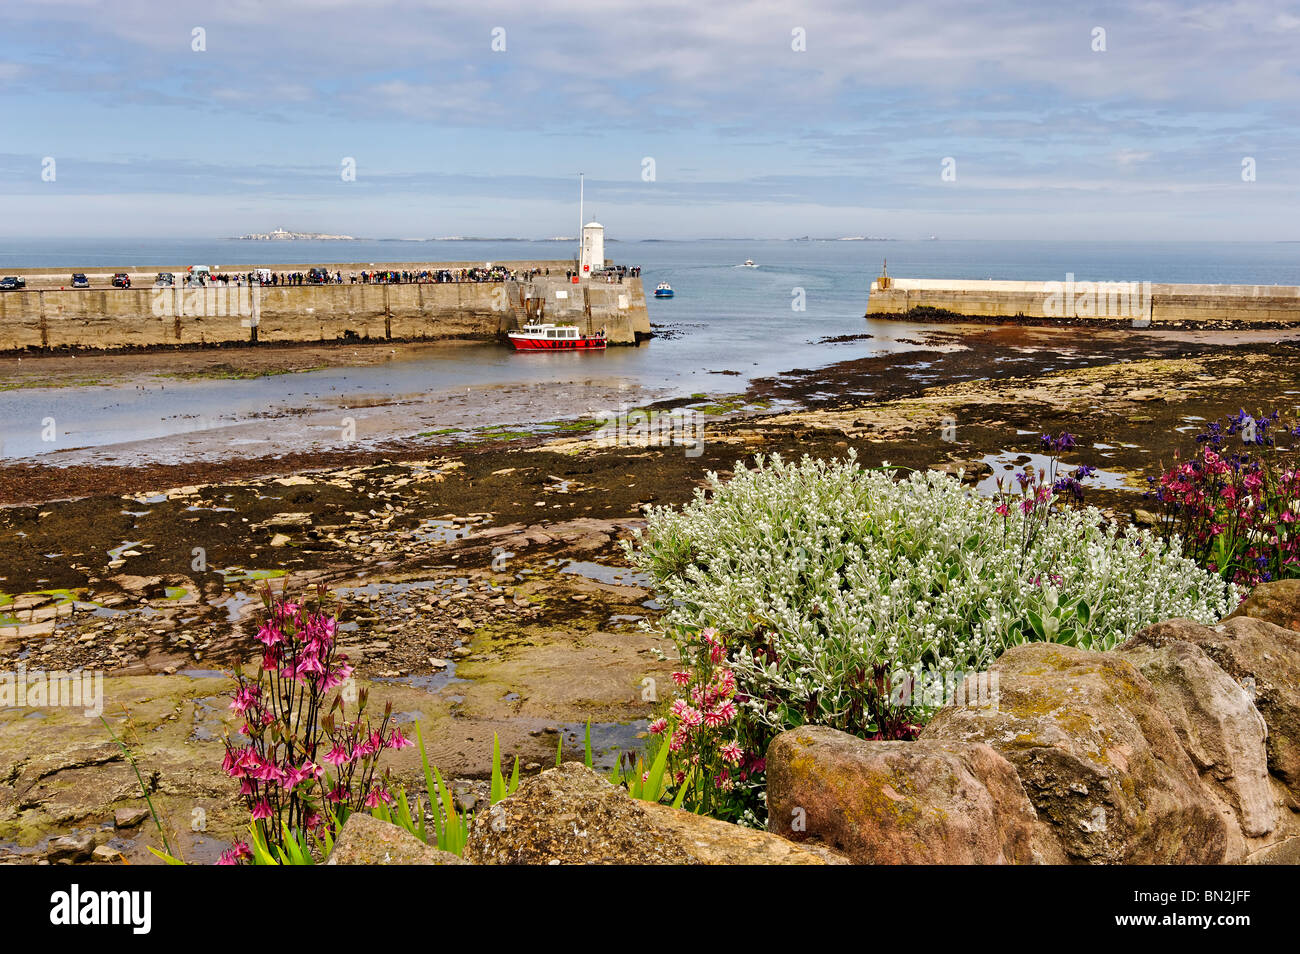 A view of Seahouses harbour in Northumberland - Stock Image